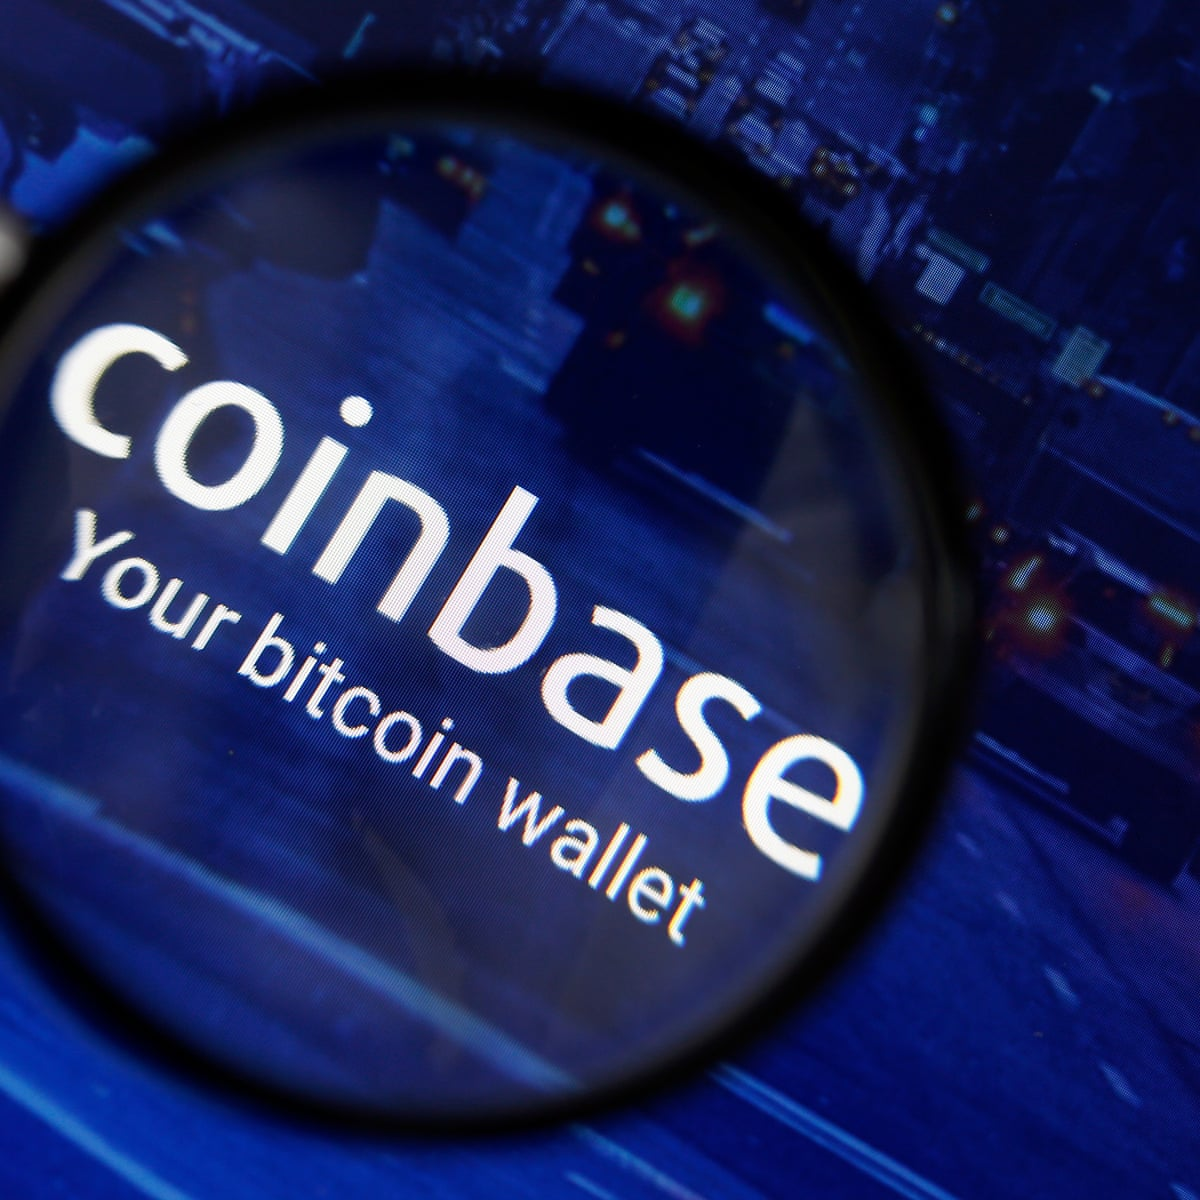 coinbase number uk